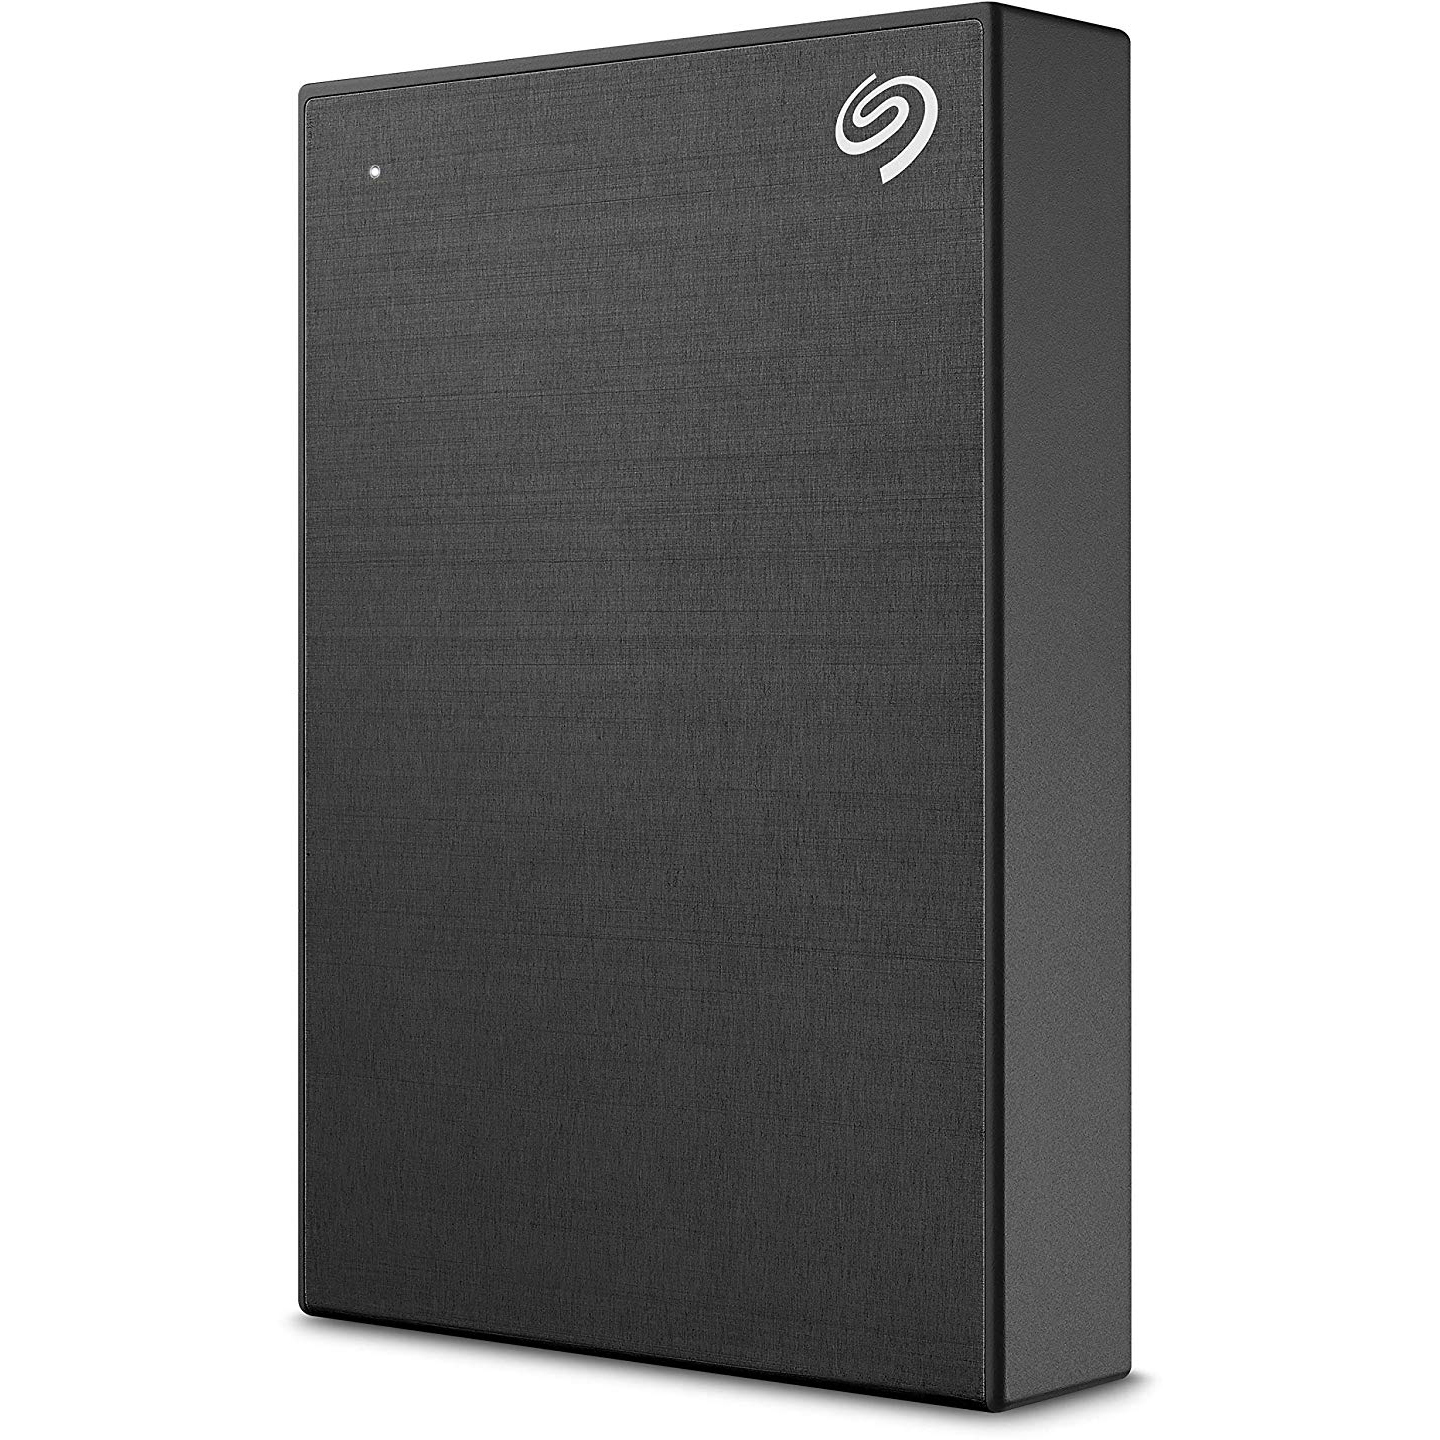 Original Seagate Backup Plus 4TB Black 2.5inch USB 3.0 External Hard Drive (STHP4000400)